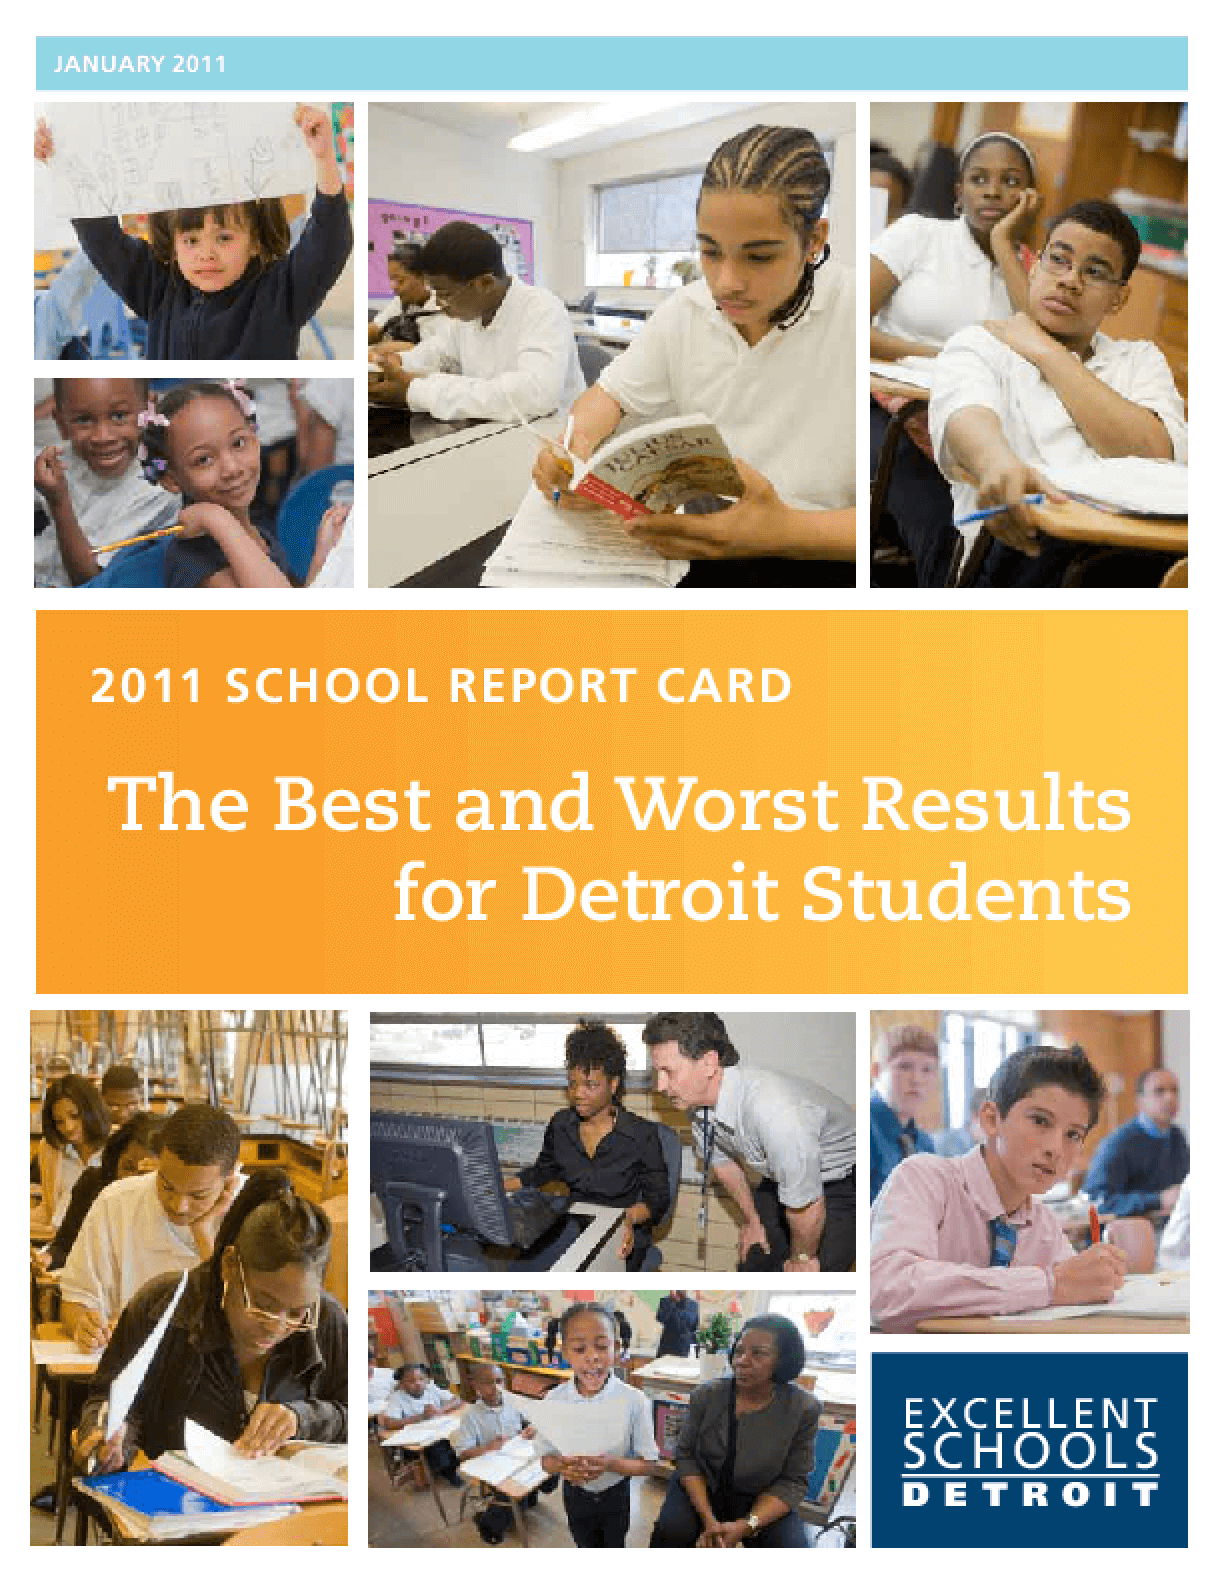 2011 School Report Card: The Best and Worst Results for Detroit Students